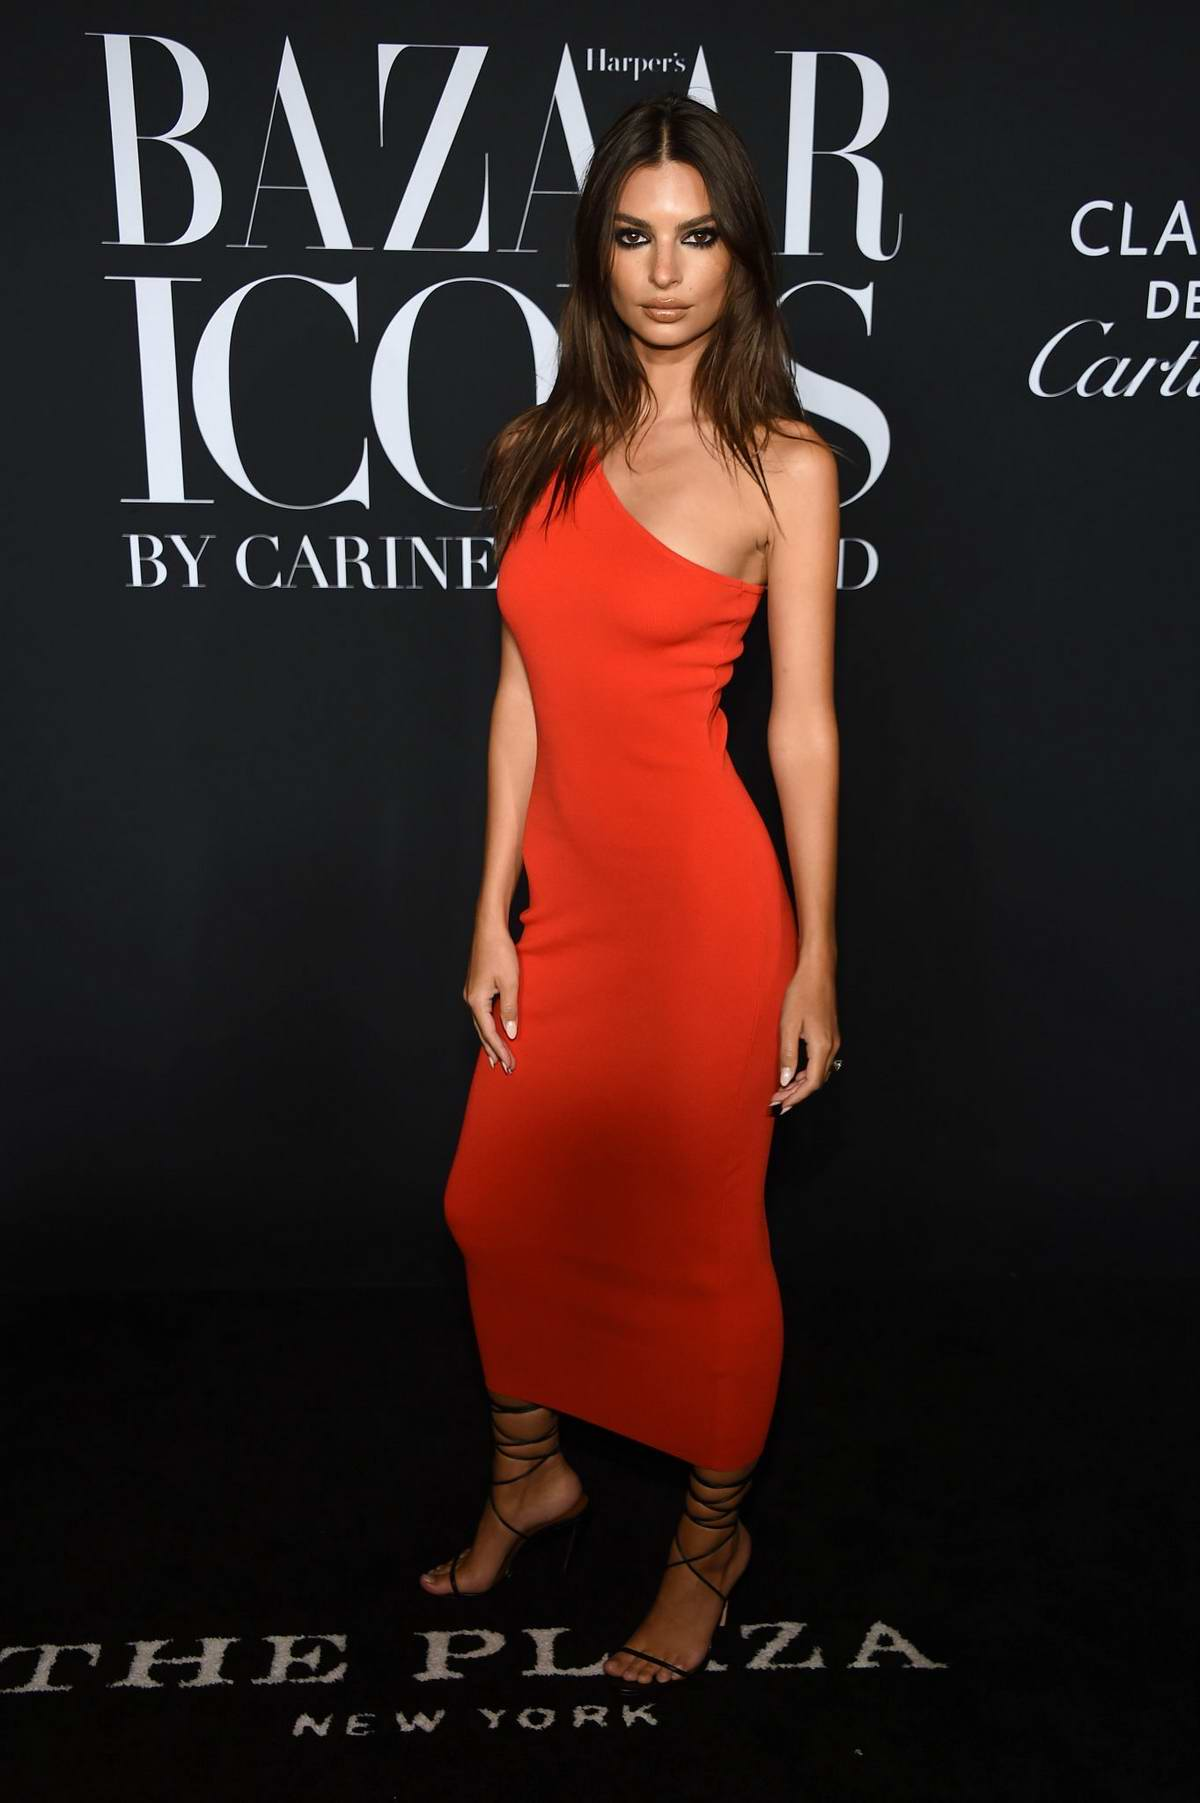 Emily Ratajkowski attends the 2019 Harper's Bazaar ICONS Party at The Plaza Hotel in New York City